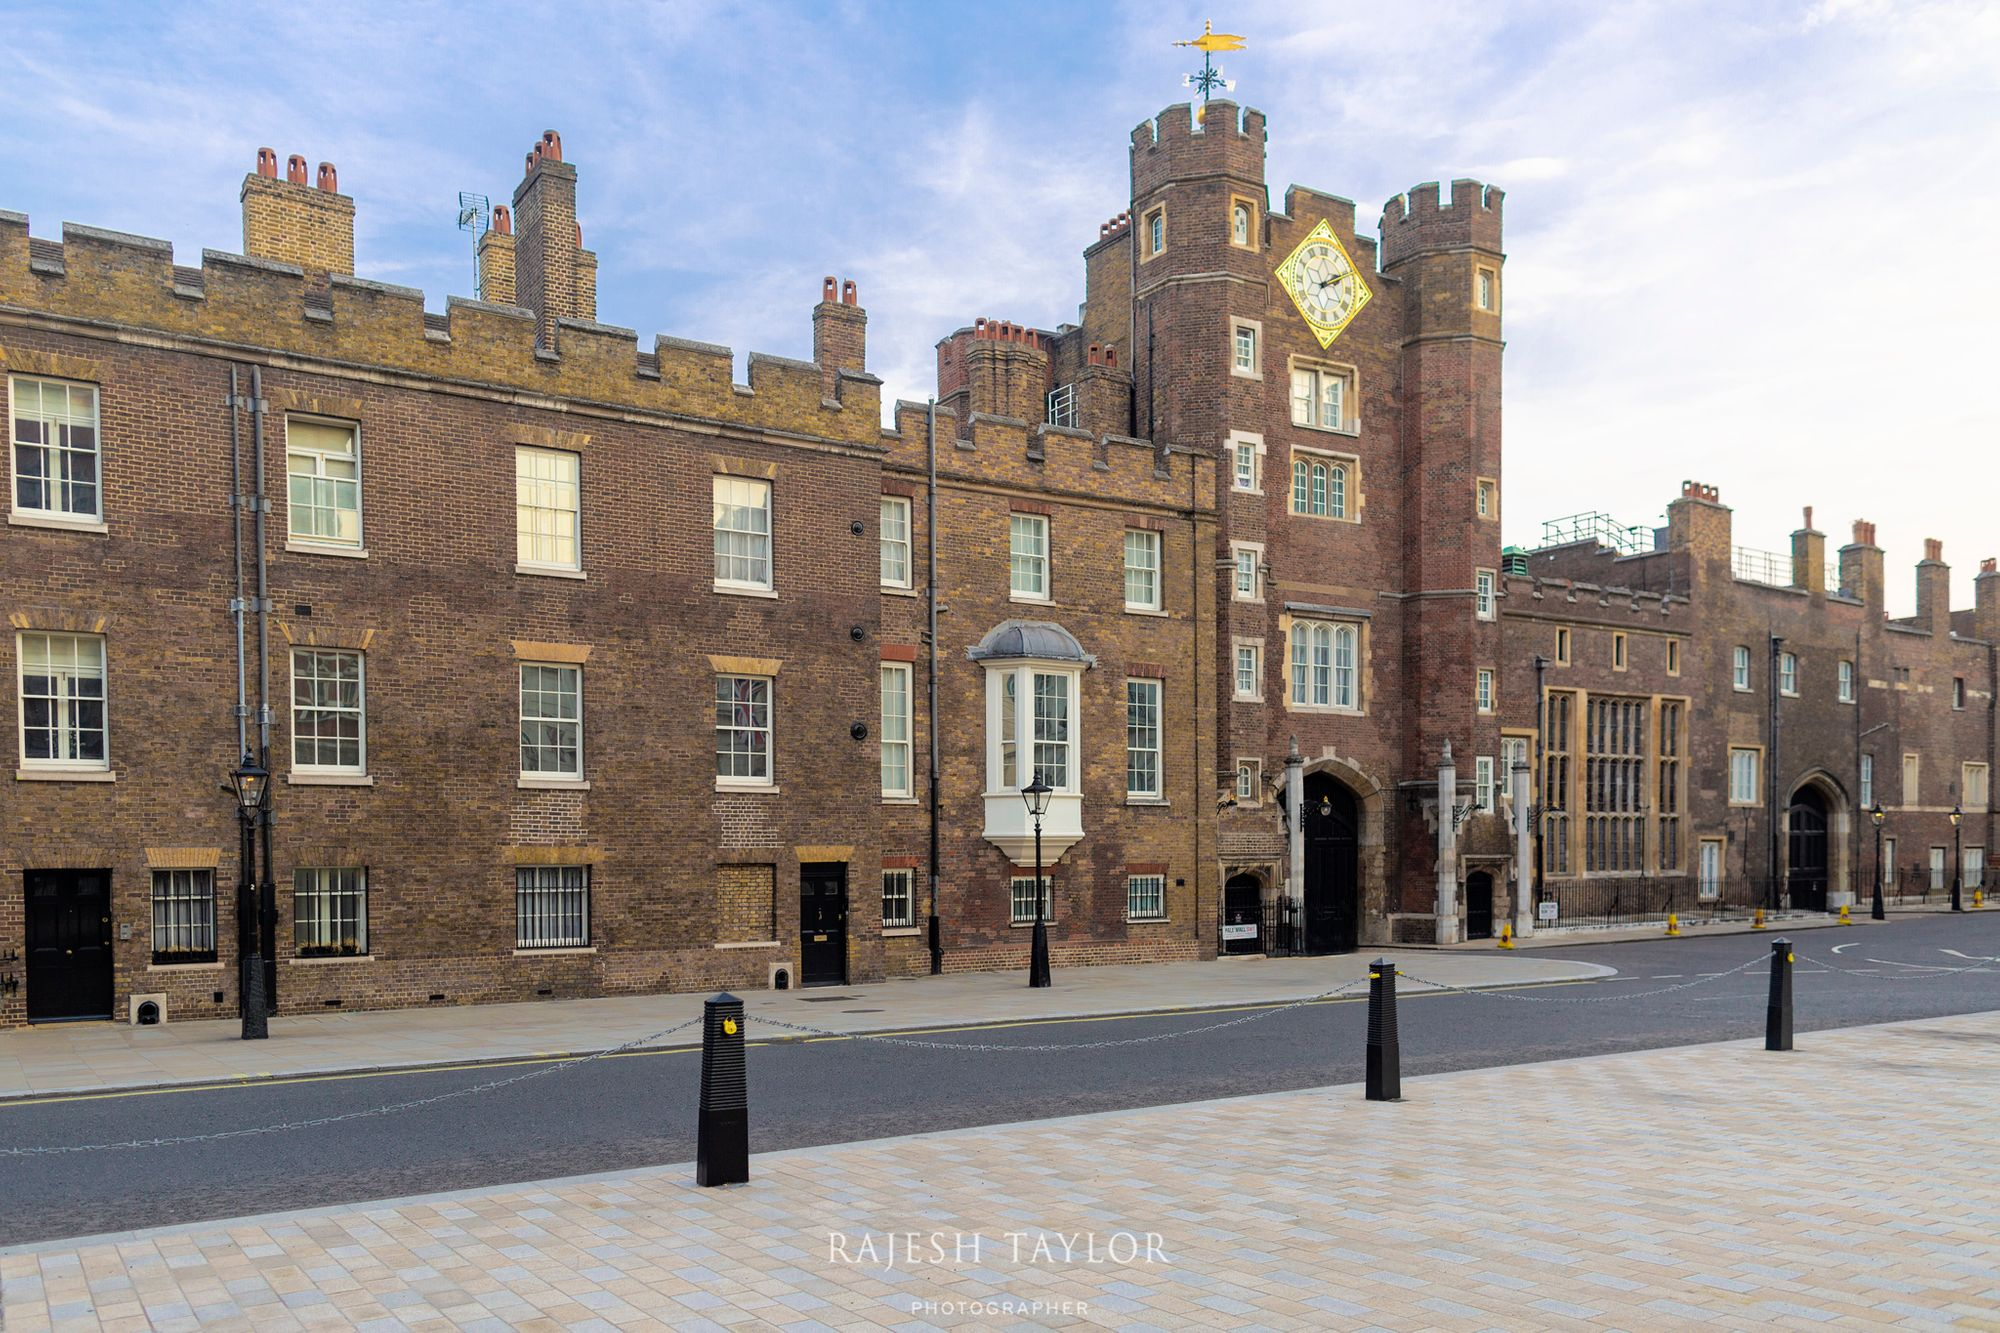 St. James's Palace, Pall Mall © Rajesh Taylor